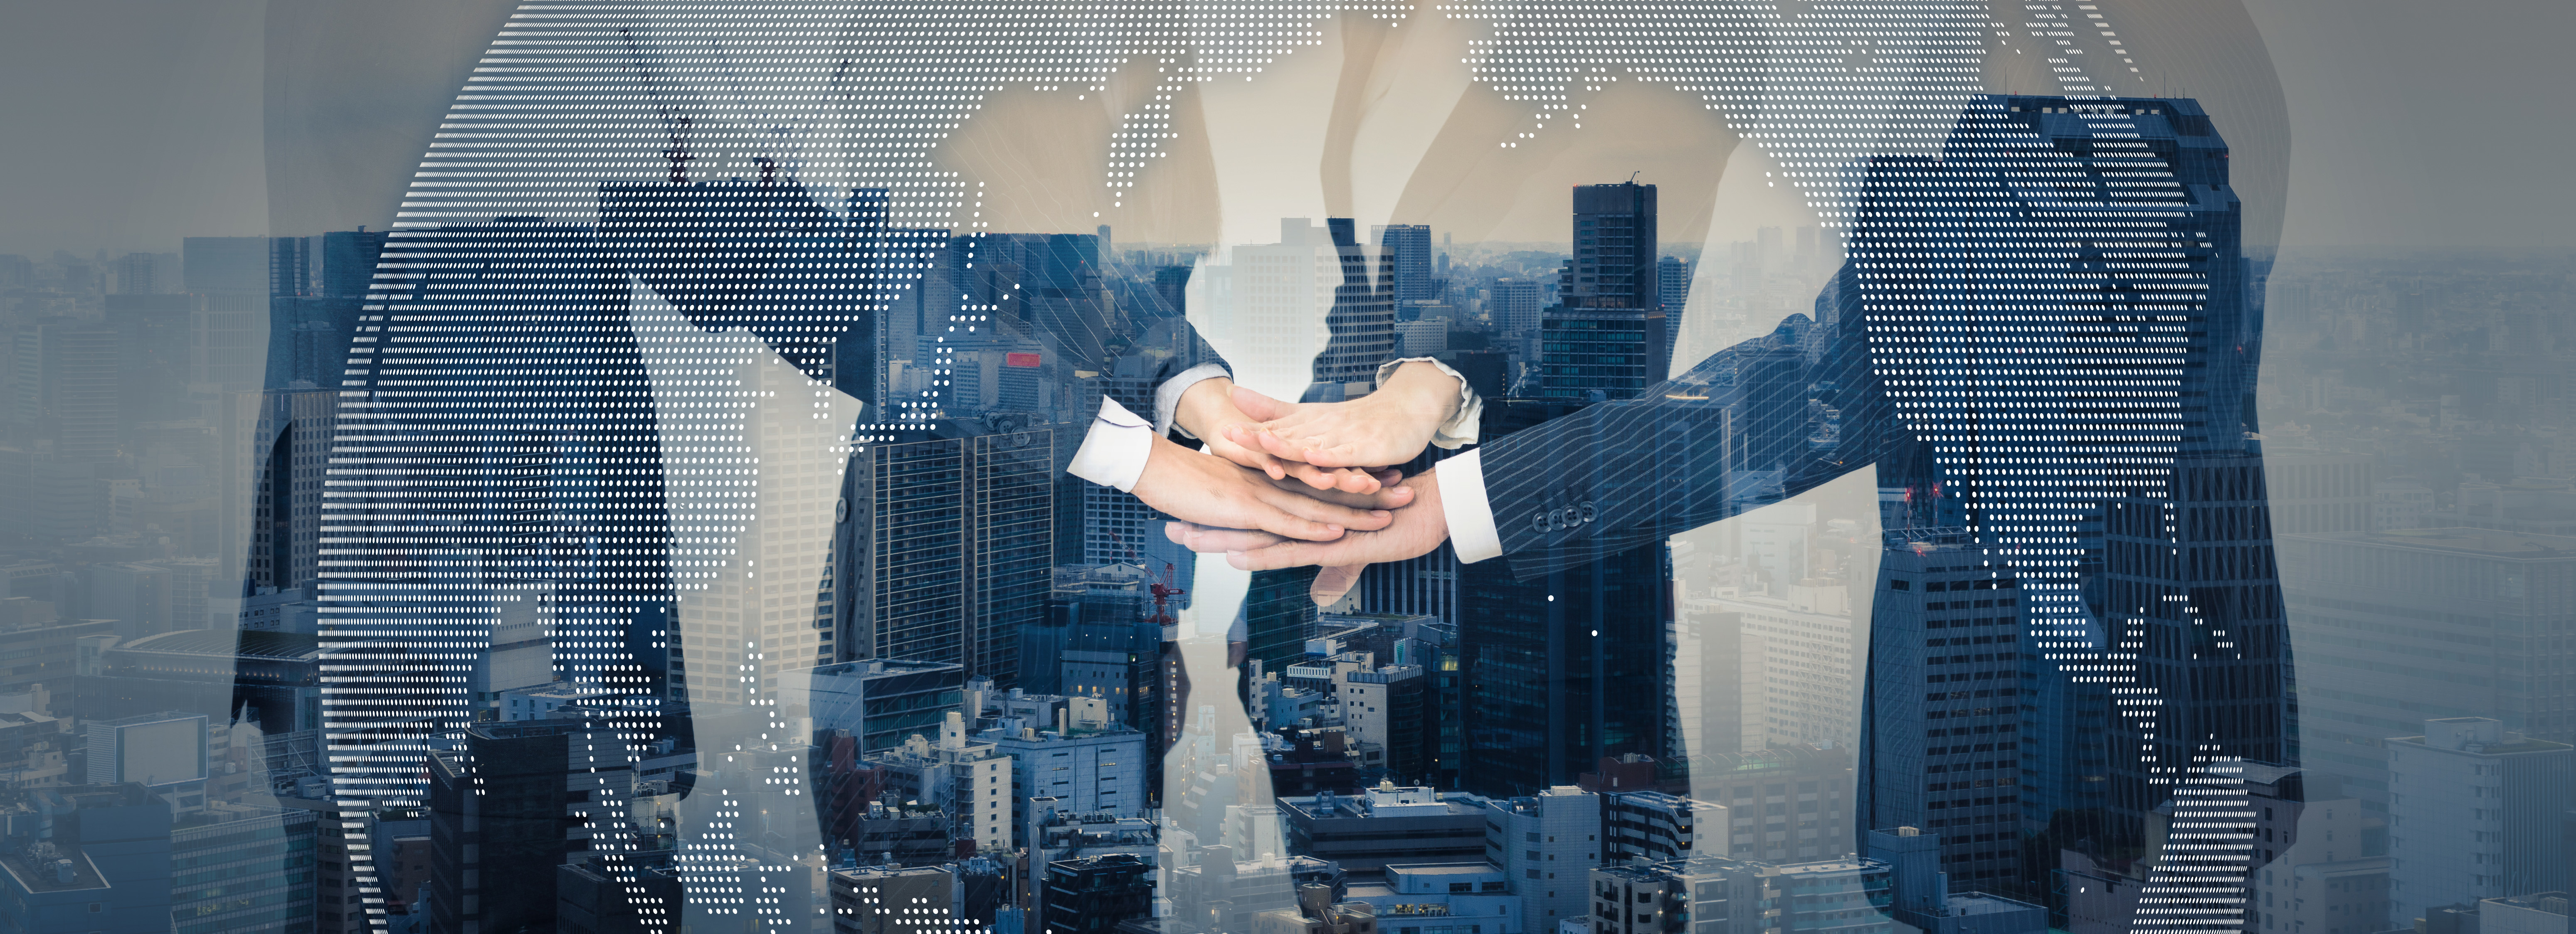 Business continuity and cyber security collaboration